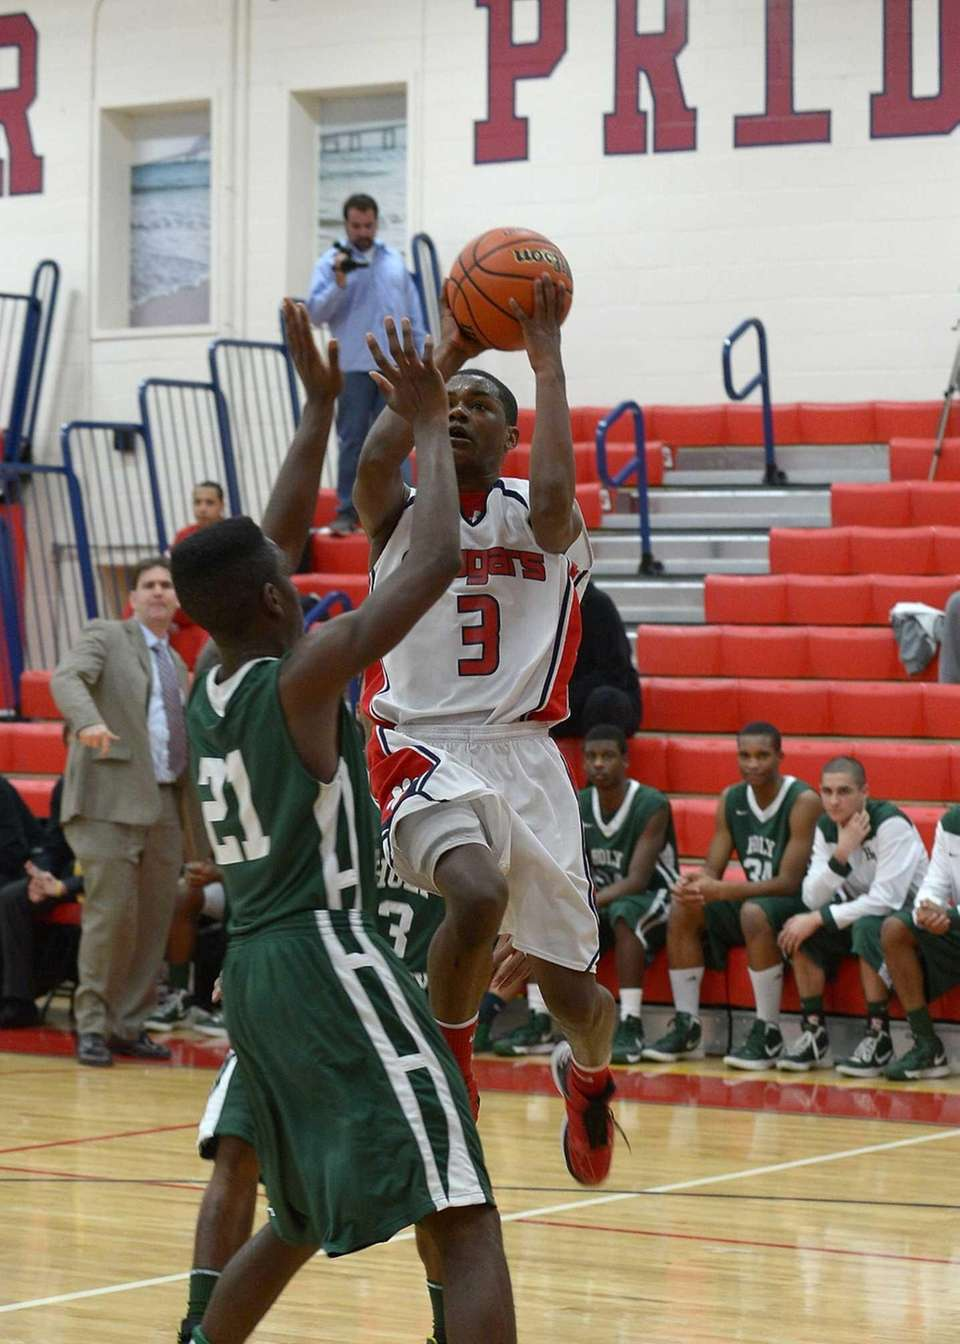 St. John the Baptist's Tavon Ginyard goes up